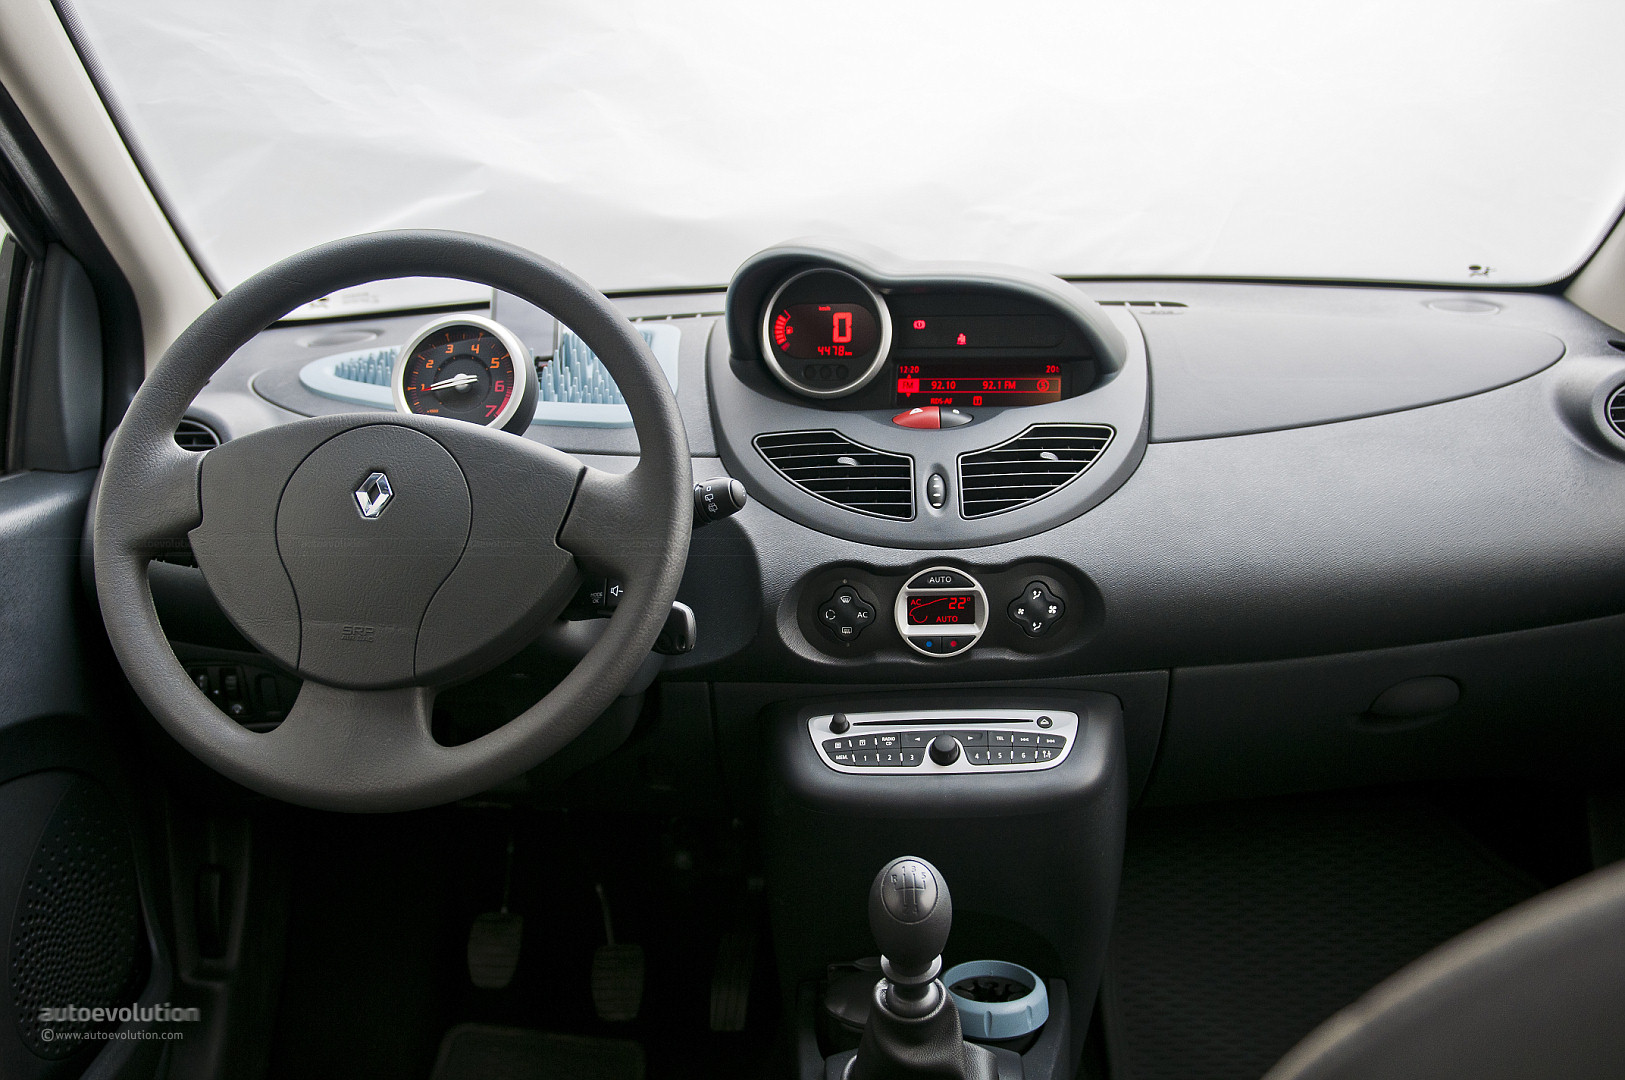 Renault Twingo Dashboard Pictures